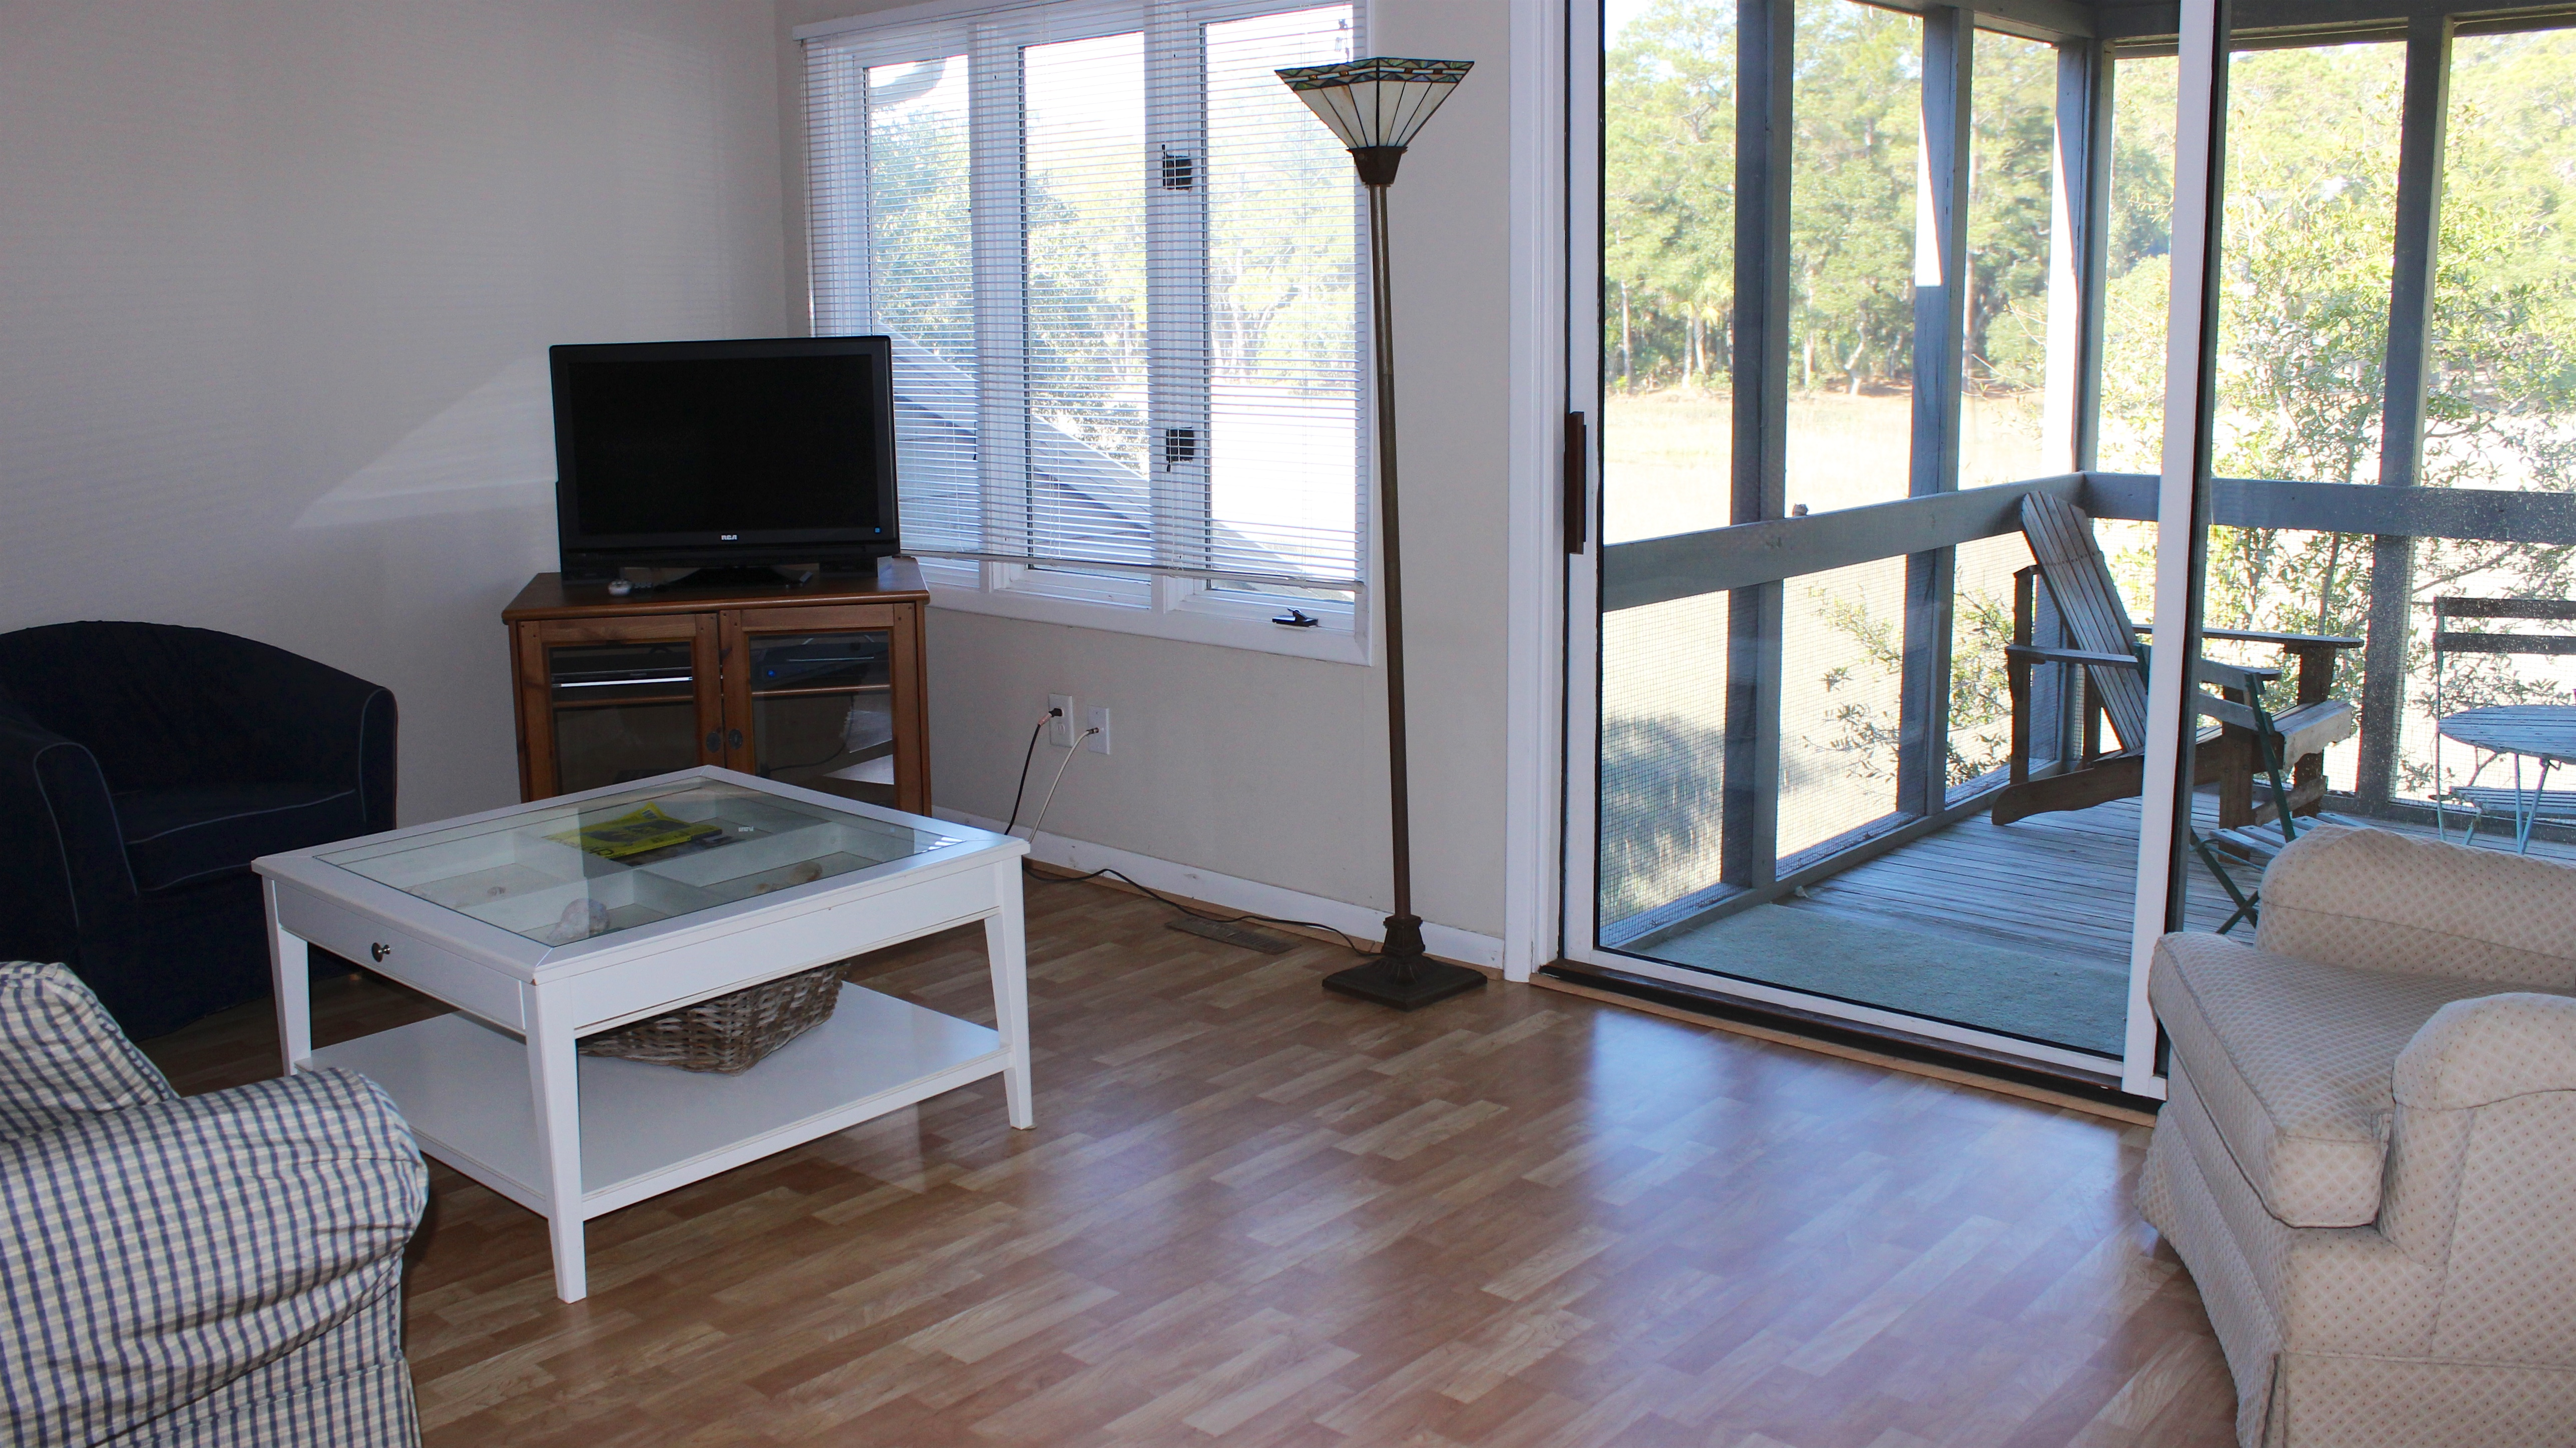 Sliding doors lead to a screened porch.